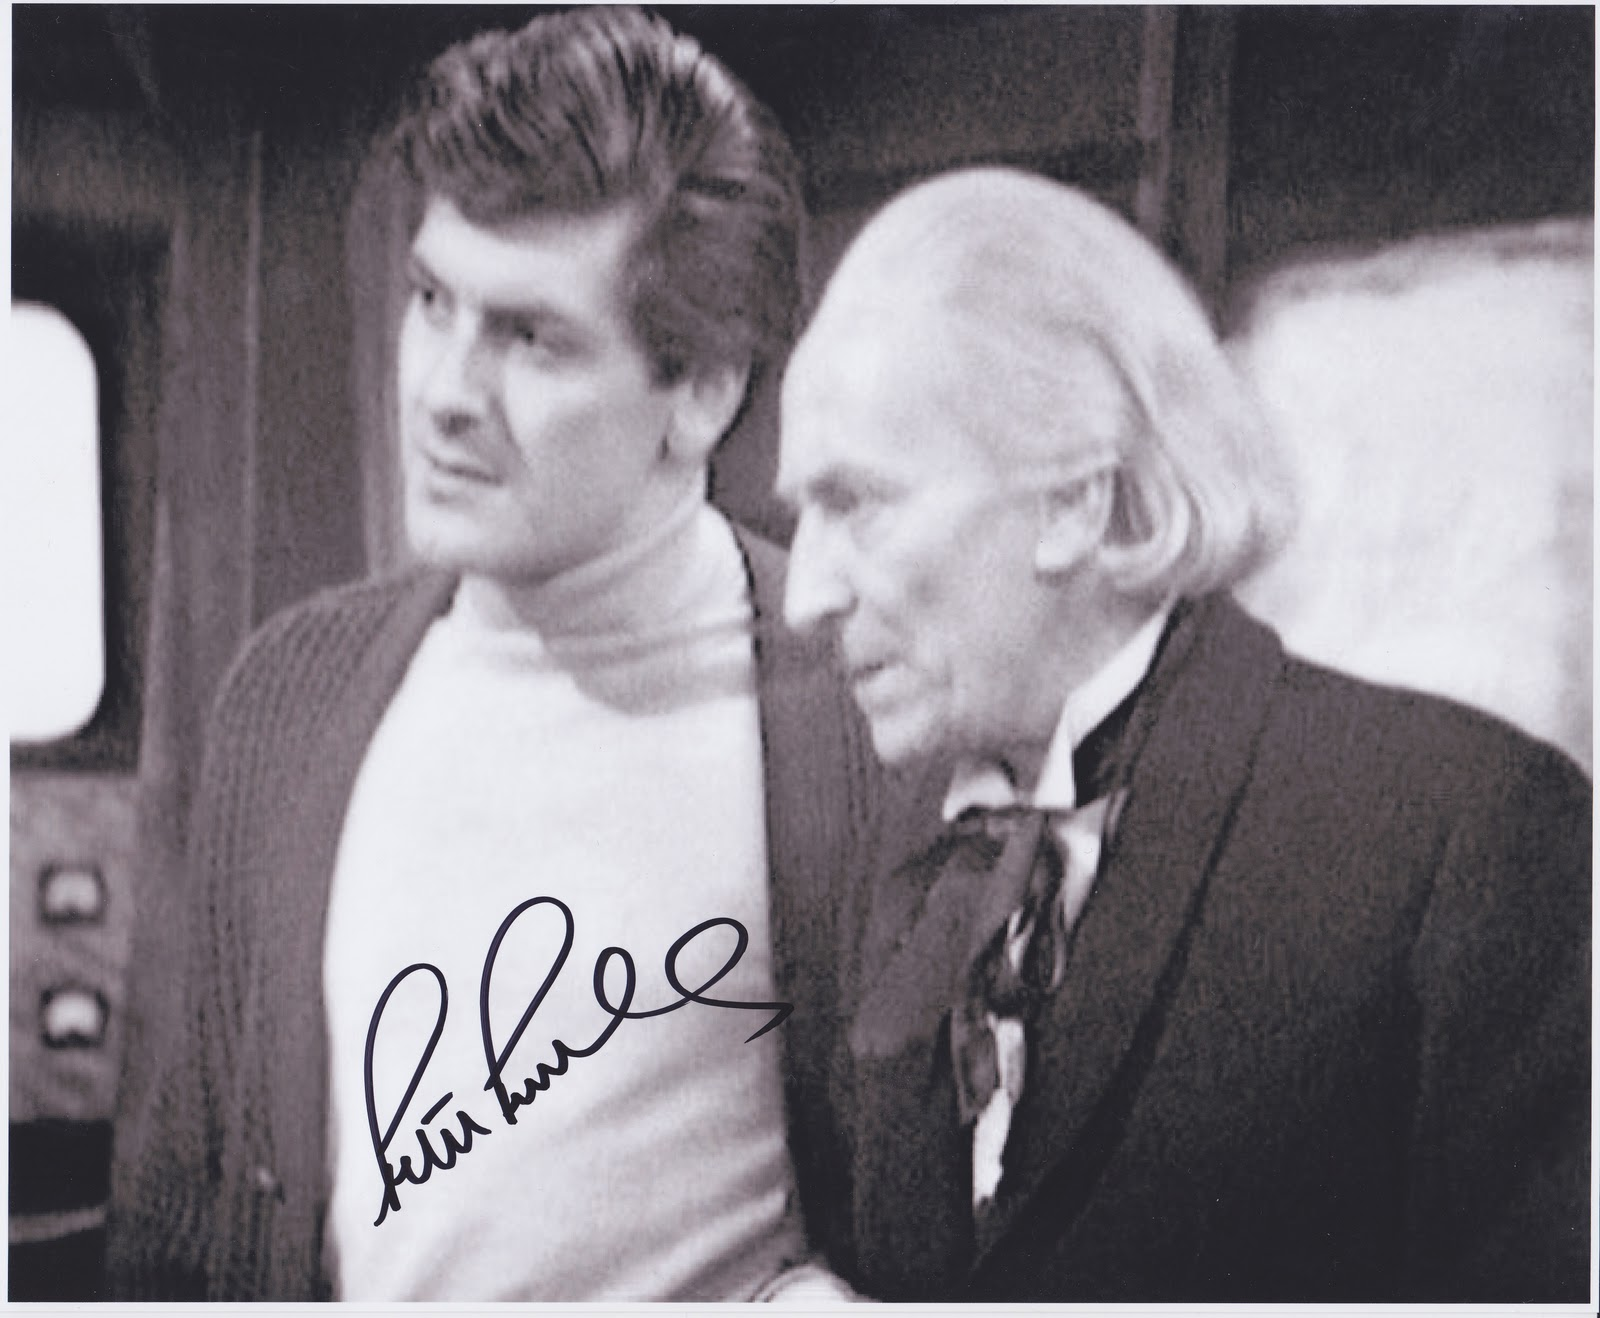 found for Louise Purves on http://doctorwhopictures